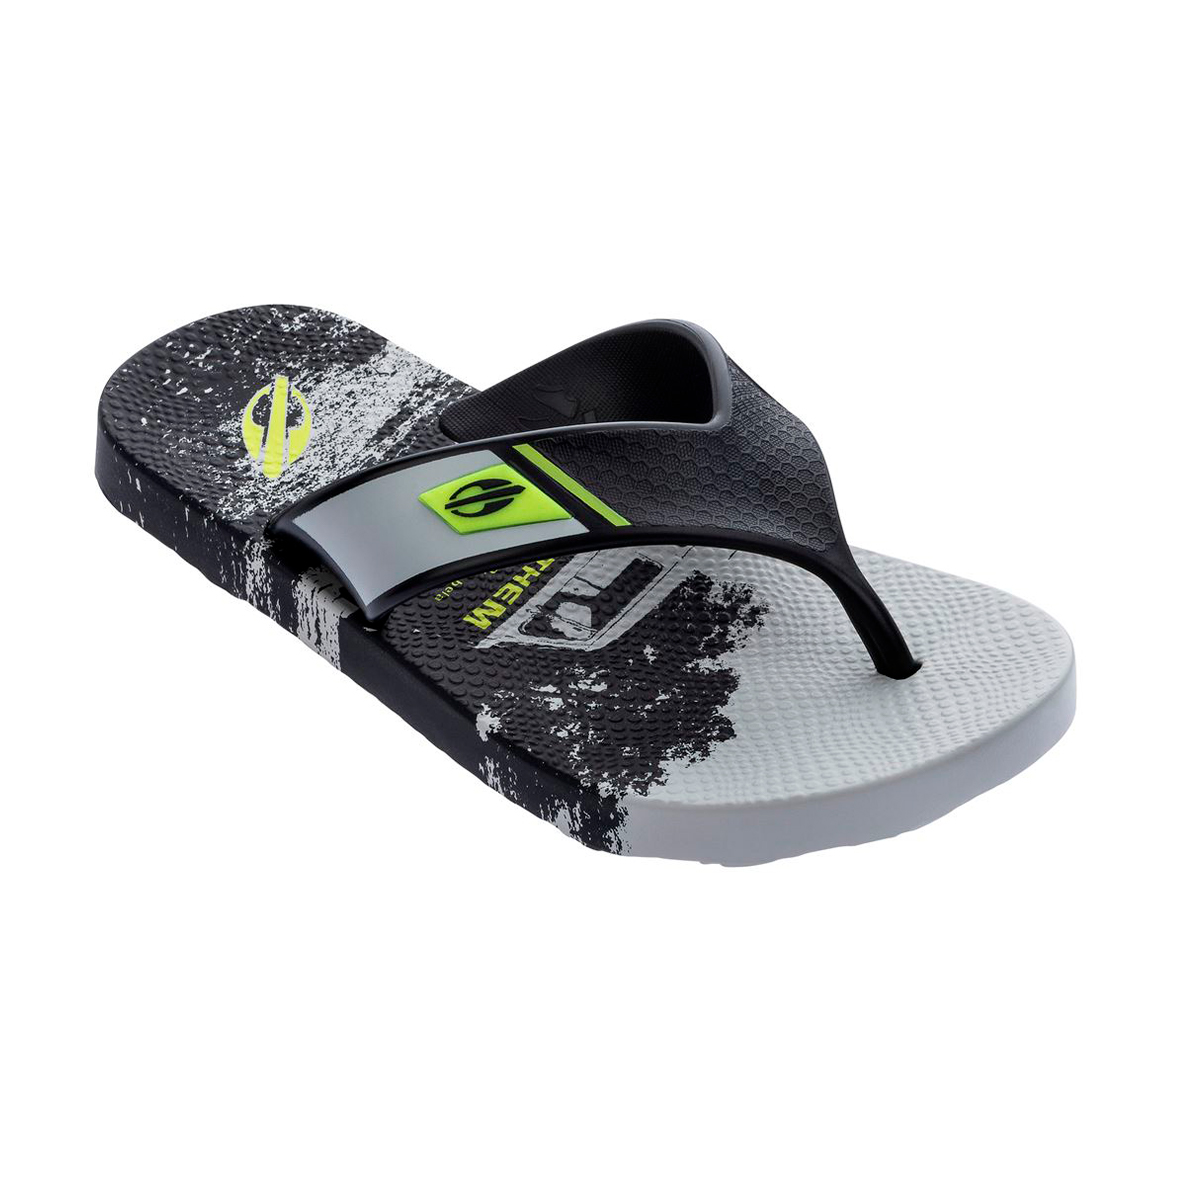 Chinelo Infantil Masculino Neocycle Mormaii 10897